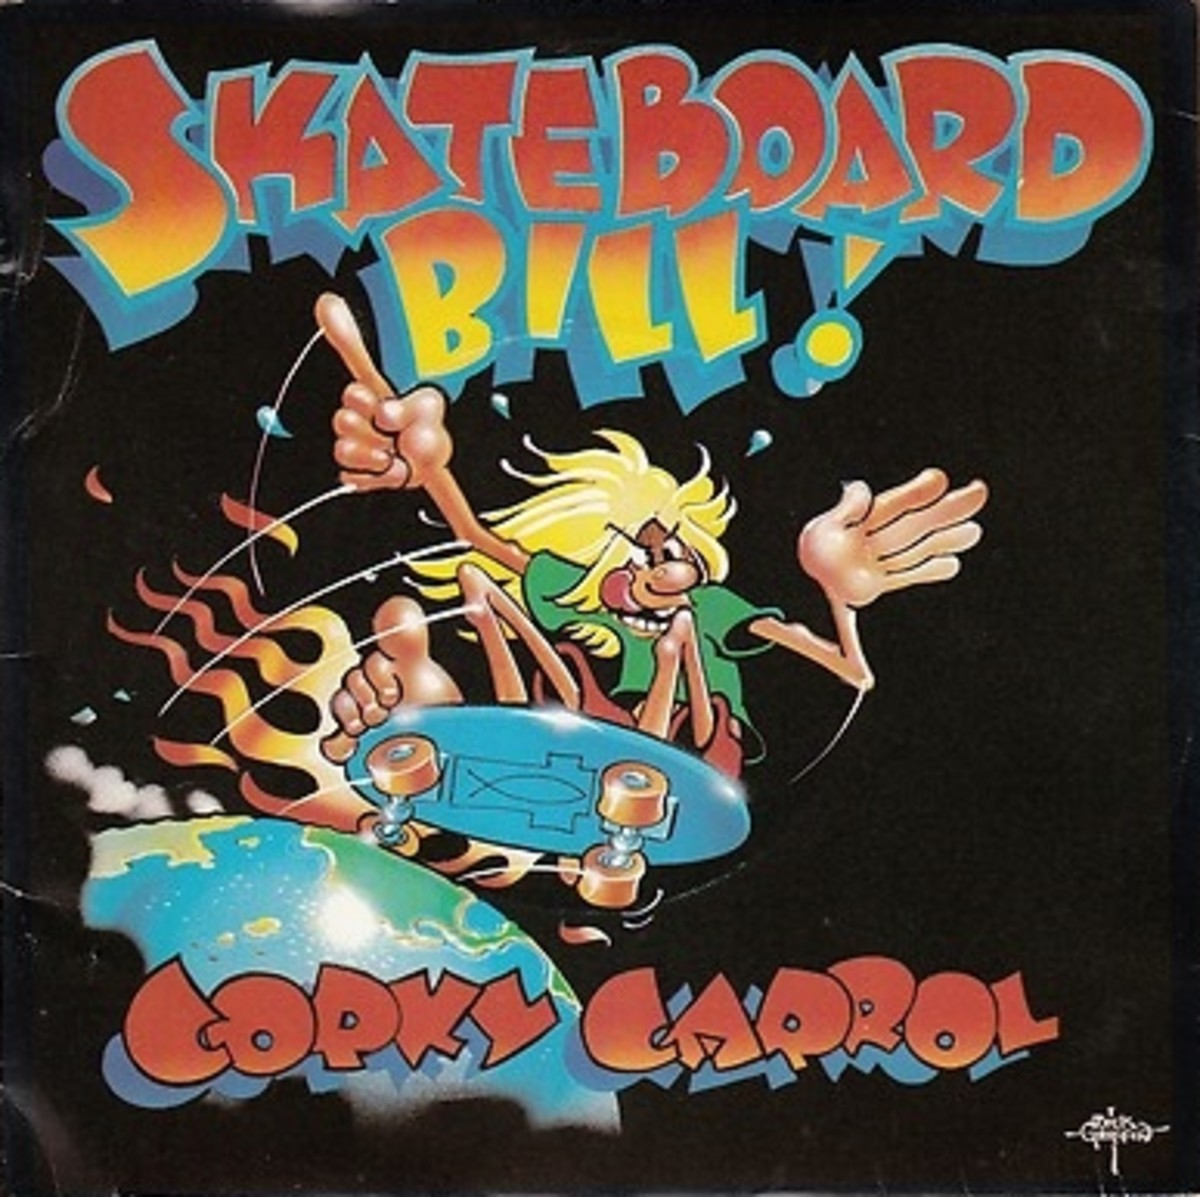 "Corky Carroll ""Skateboard Bill"" Heavy Records JT-1001 7"" Blue Vinyl Record, US Pressing (1977) Picture Sleeve Art by Rick Griffin"